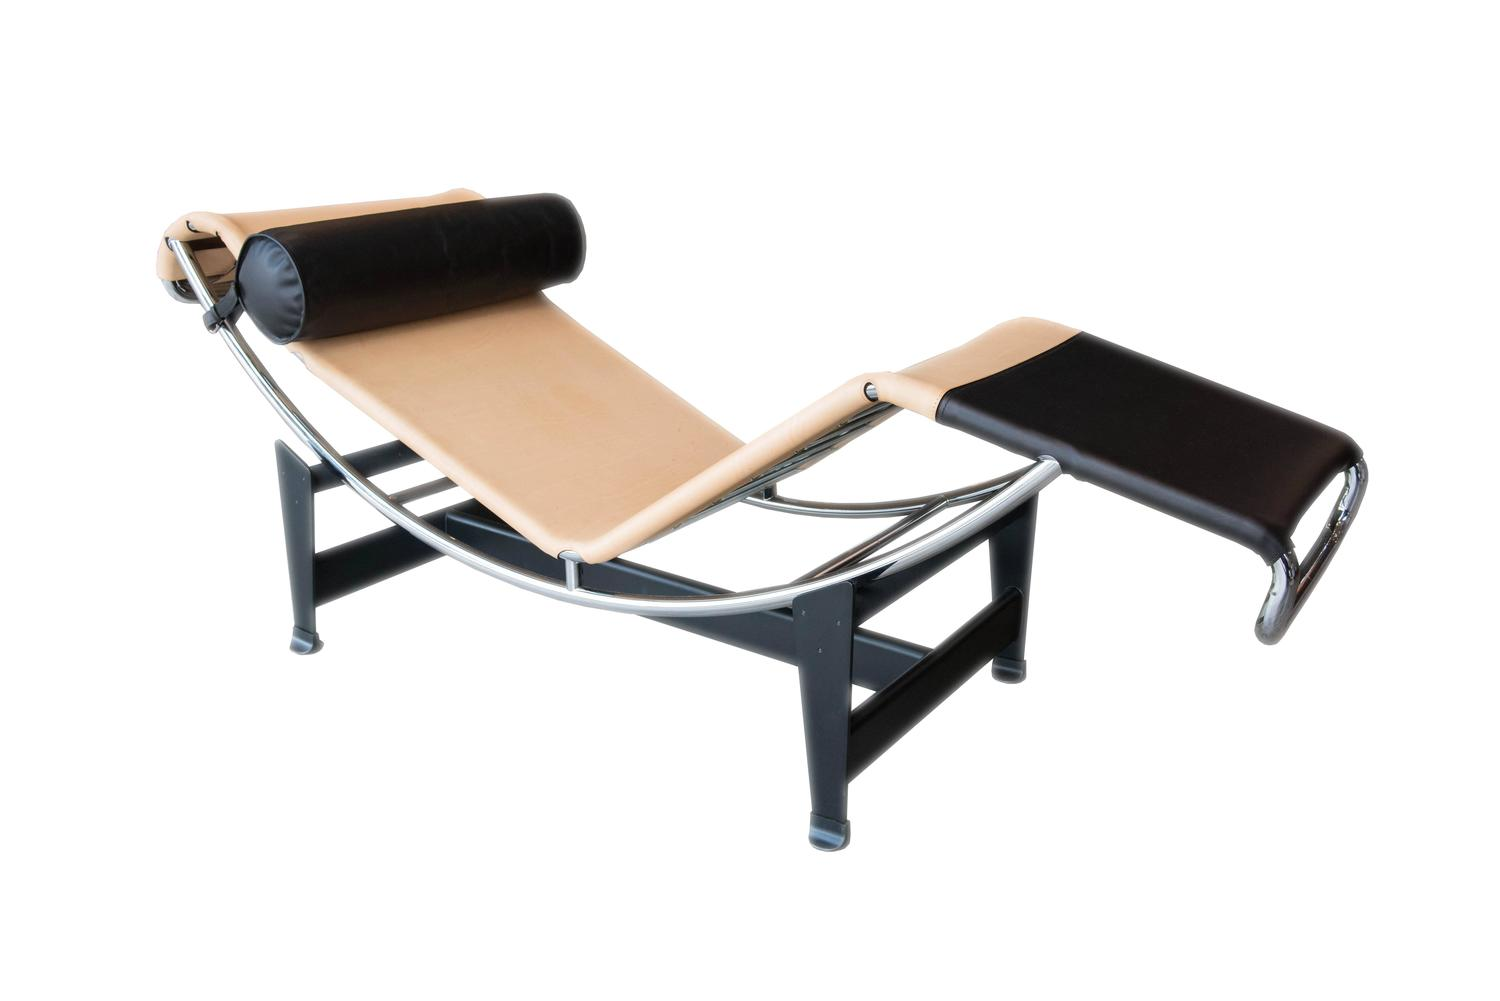 Cassina lc4 louis vuitton special edition chaise longue for Chaise longue lc4 occasion